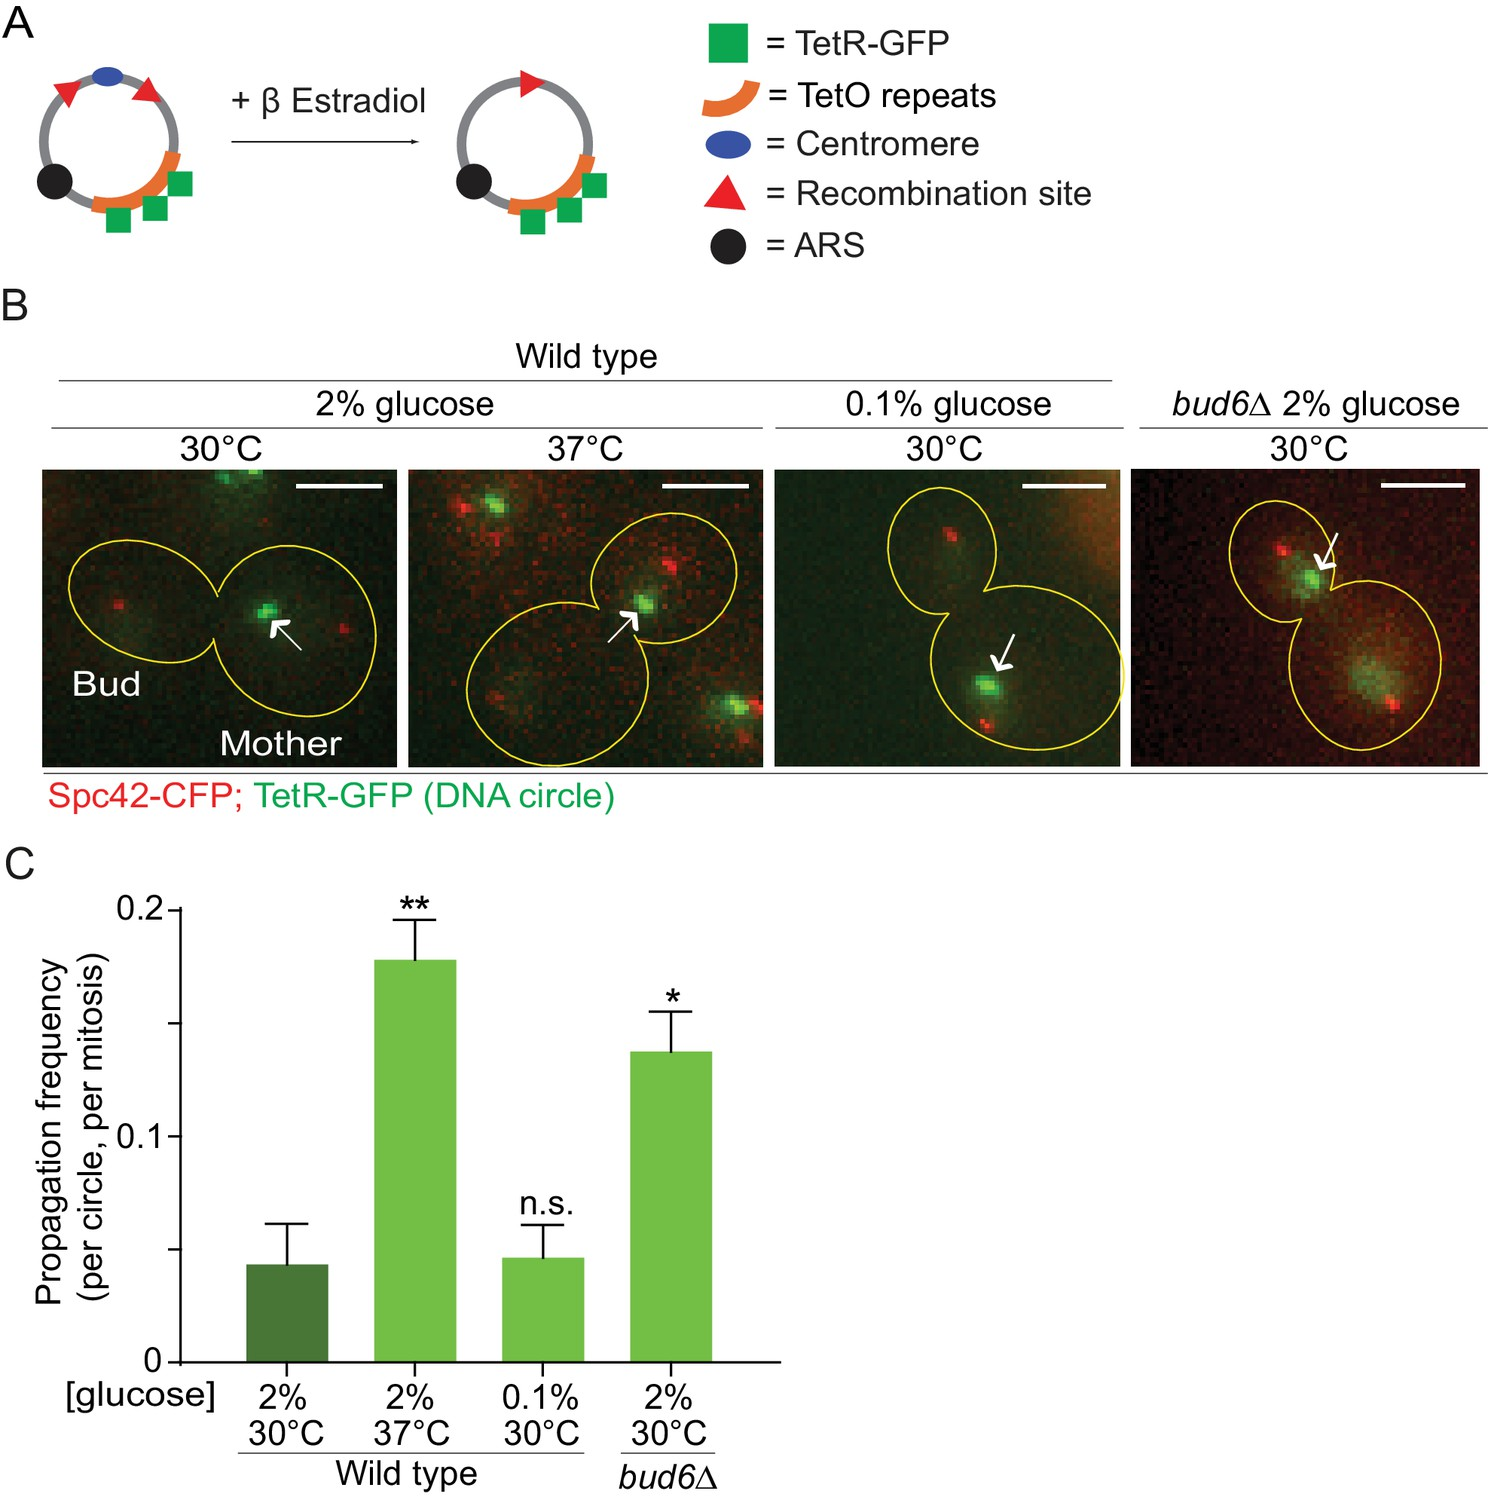 Heat Stress Promotes Longevity In Budding Yeast By Relaxing The Wiring Diagrams And Schematics With Graded Quiz Troubleshooting Reduces Confinement Of Dna Circles Mother Cell Upon Mitosis